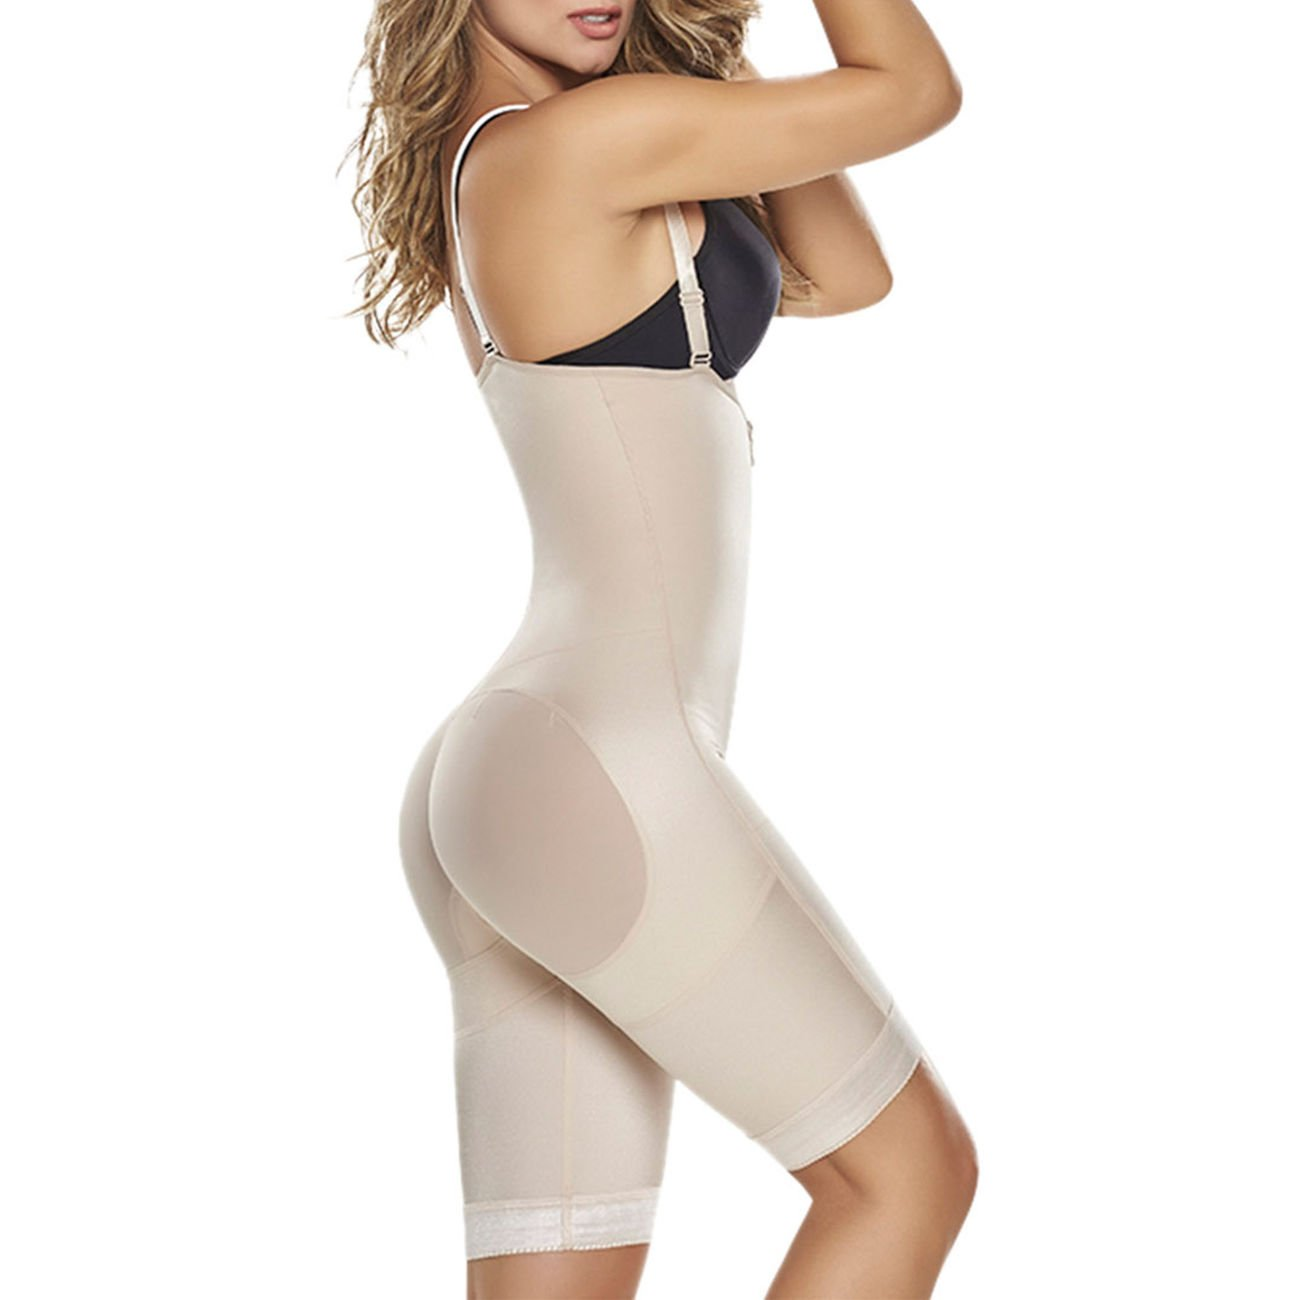 ebee843d6 TrueShapers 1221 Power Slimmed Mid-Thigh Body Shaper at Amazon Women s  Clothing store